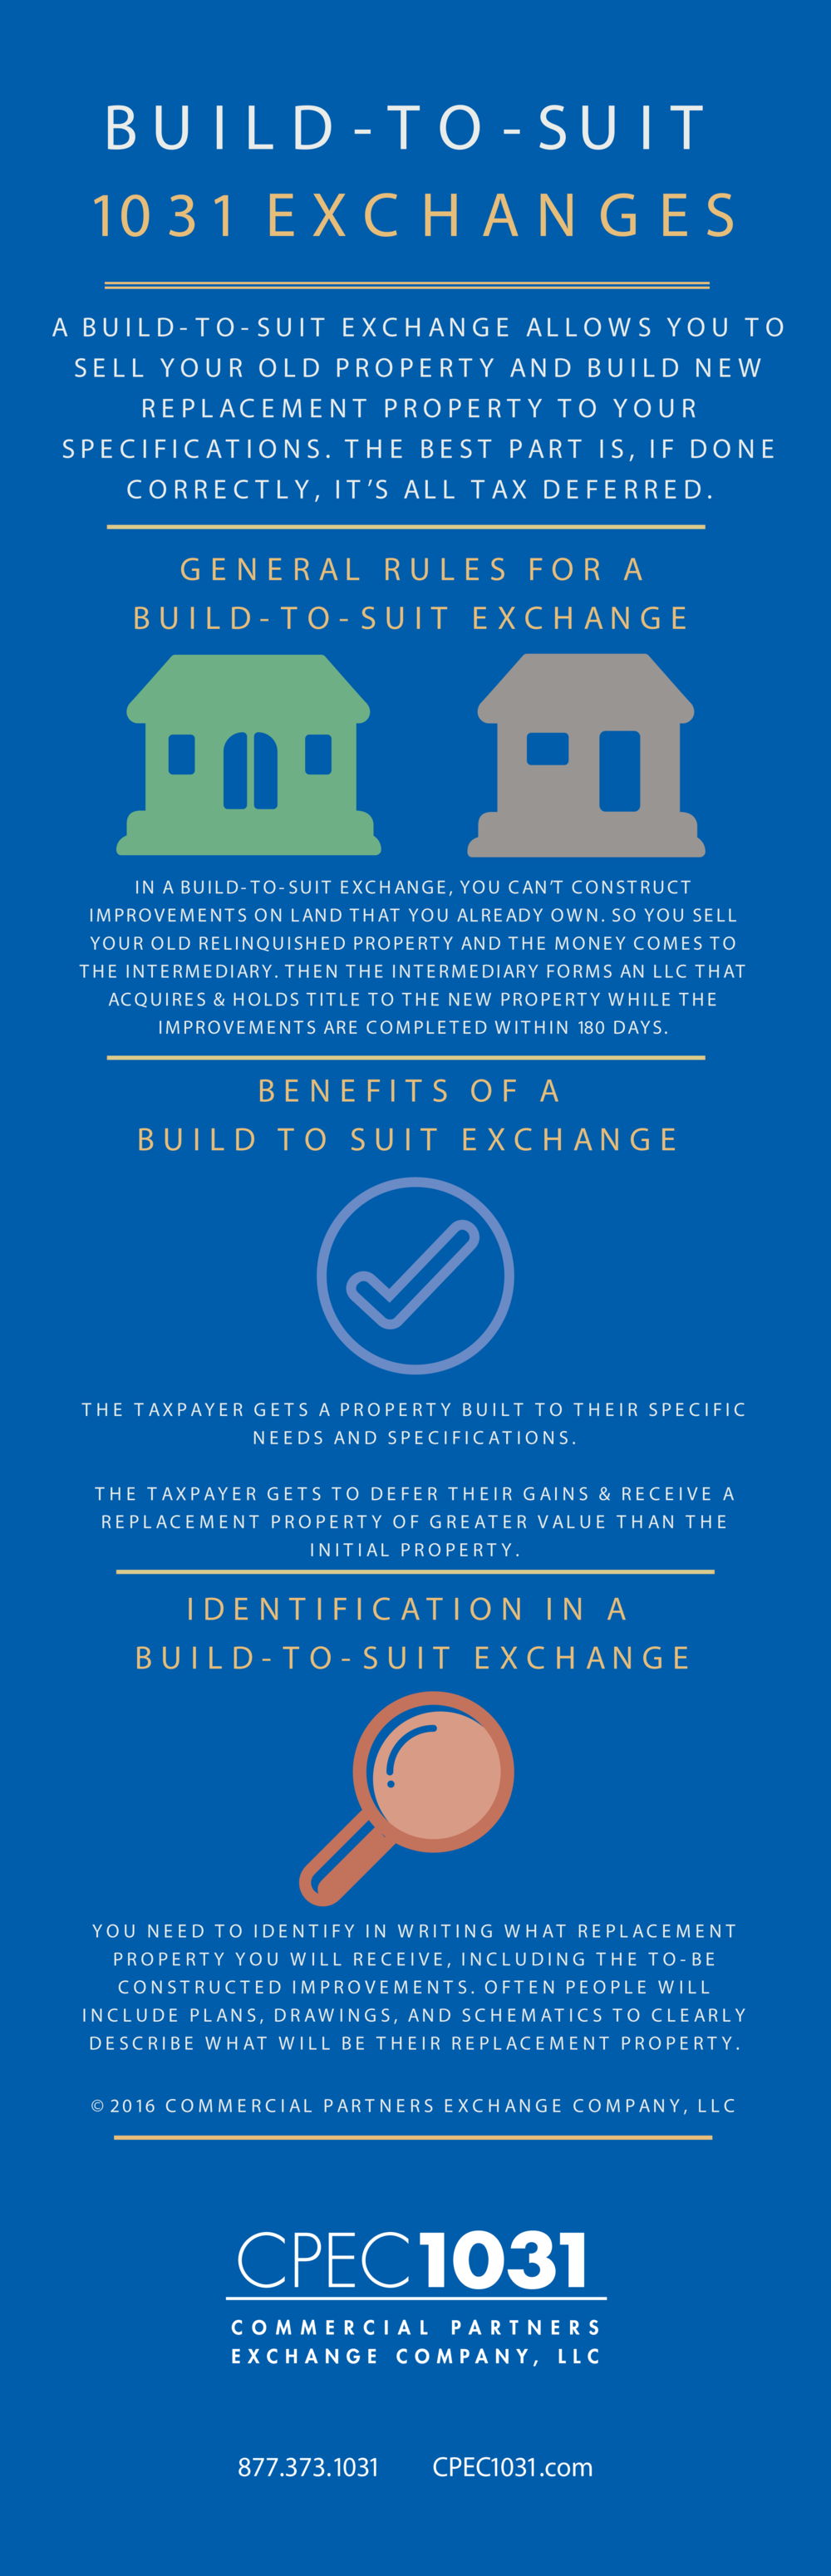 build to suit 1031 exchange infographic